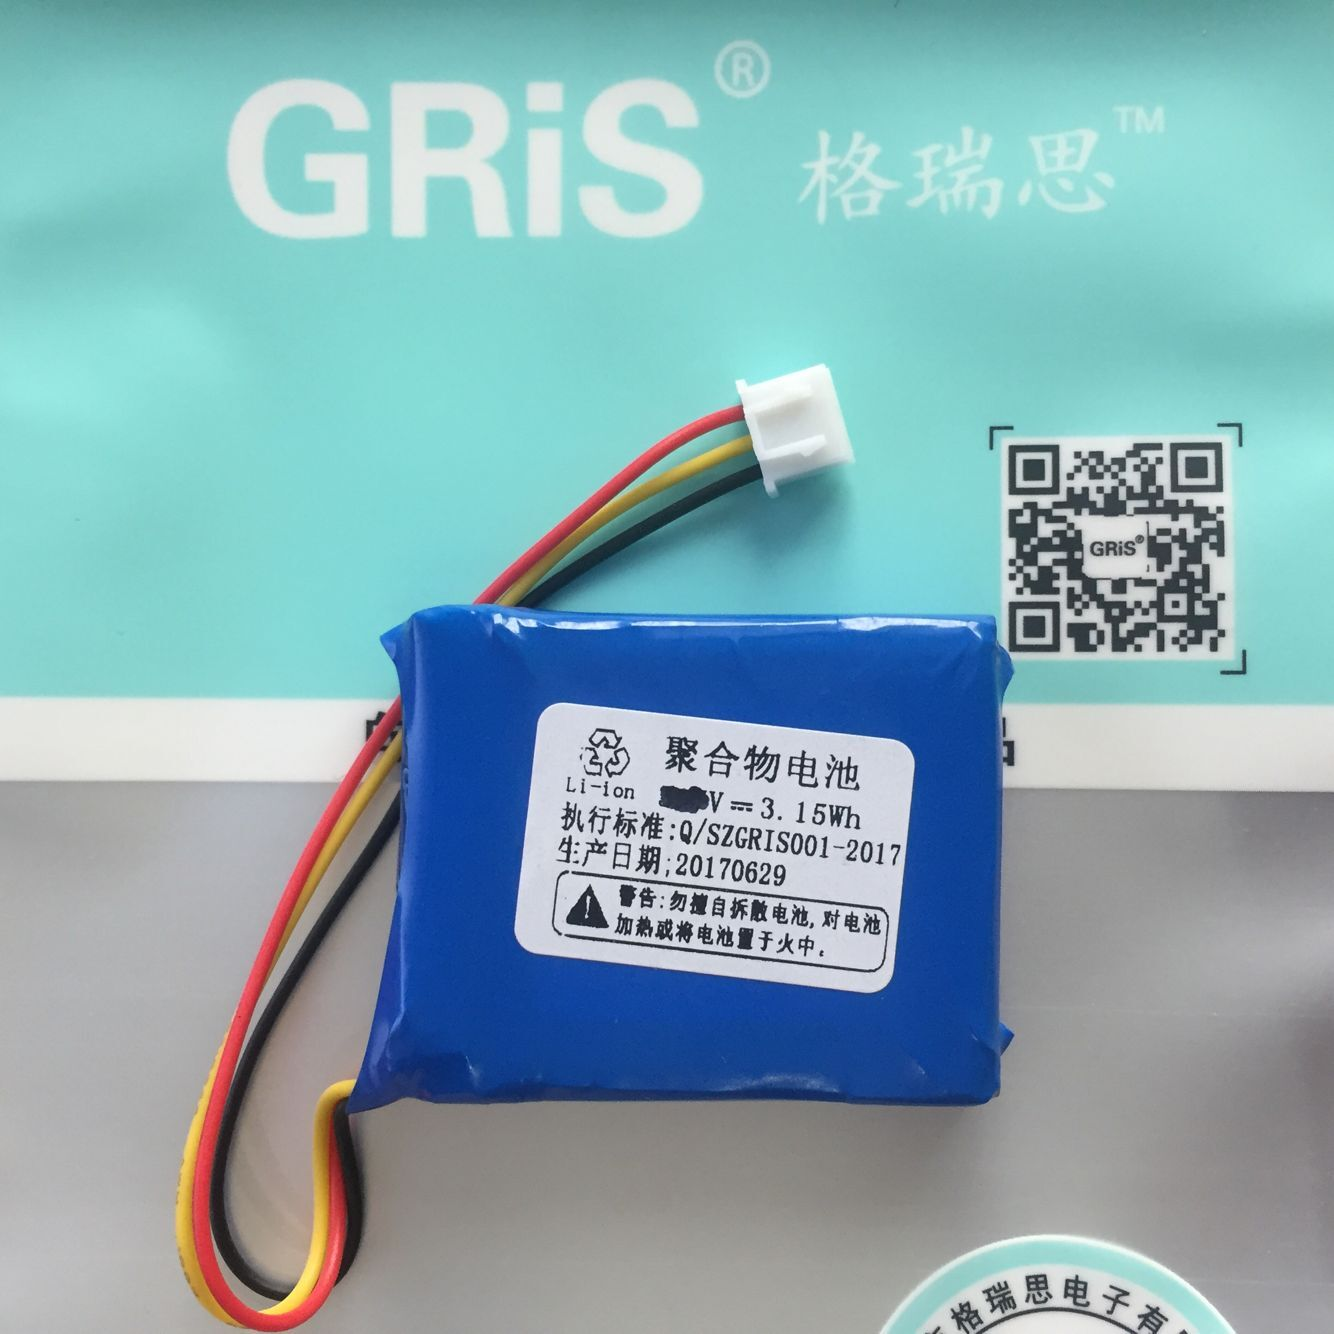 GRIS credit card machine 533947p 7 4v three-wire battery xinuo 920 ...